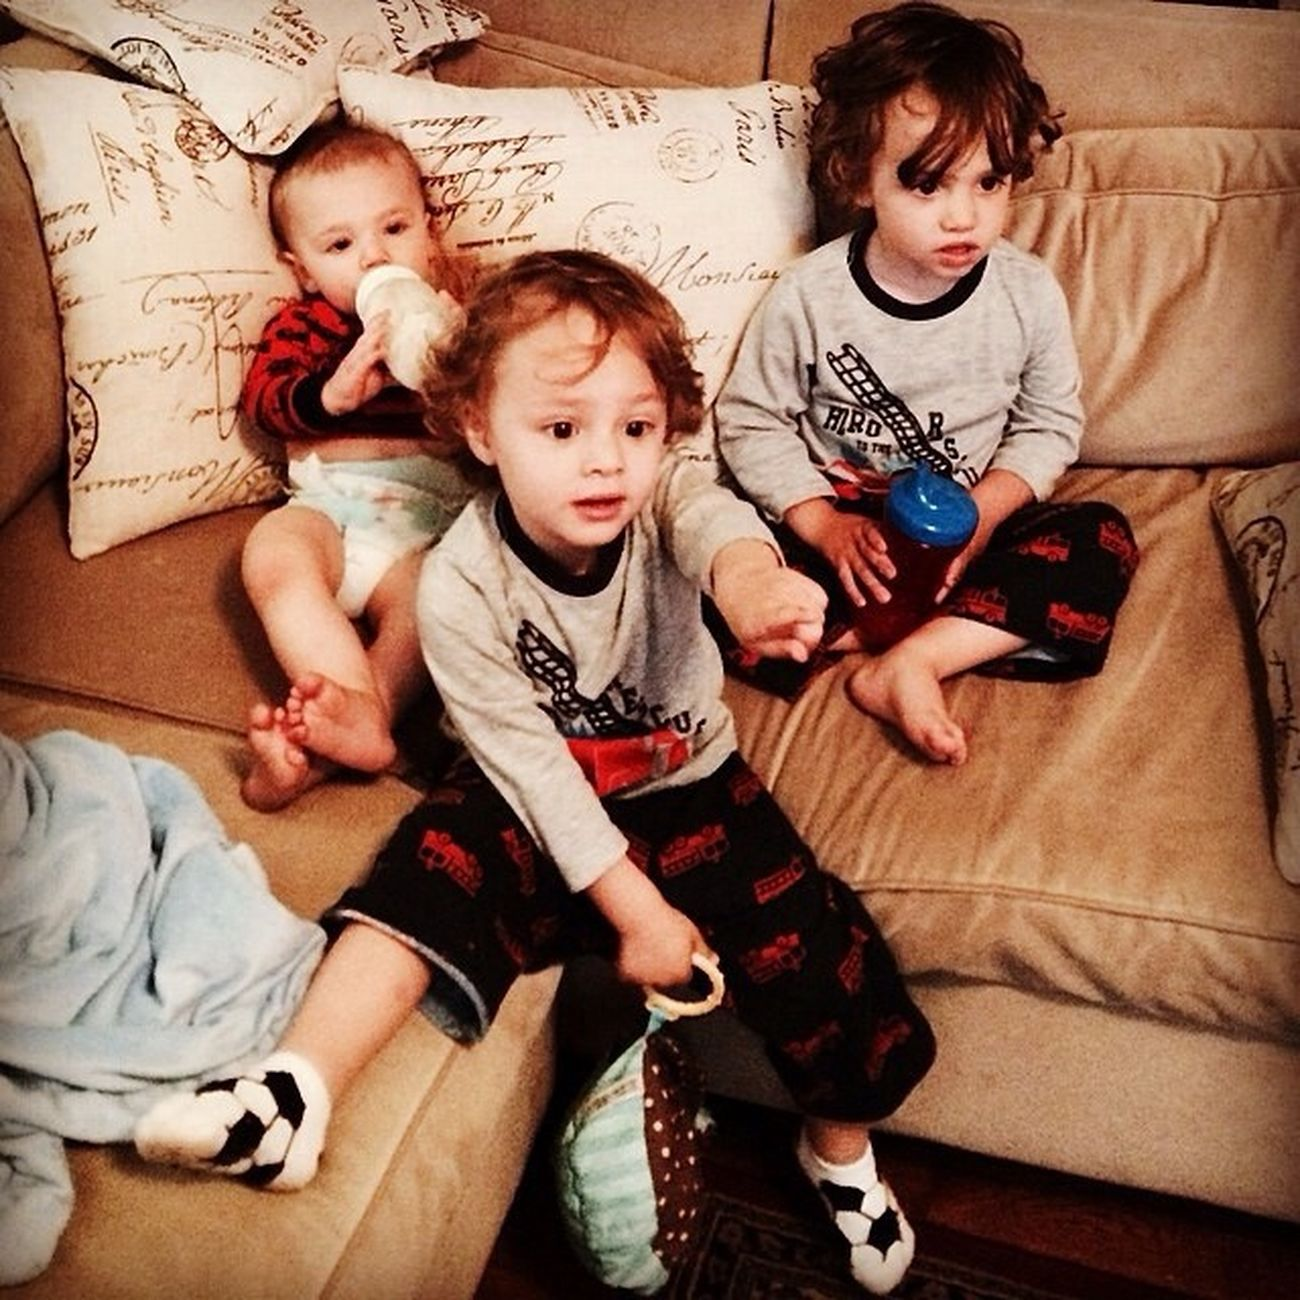 Hanging out on Saturday morning with the Saile boys BabyJoeySaile SaileTwins TheVille Streamzoofamily